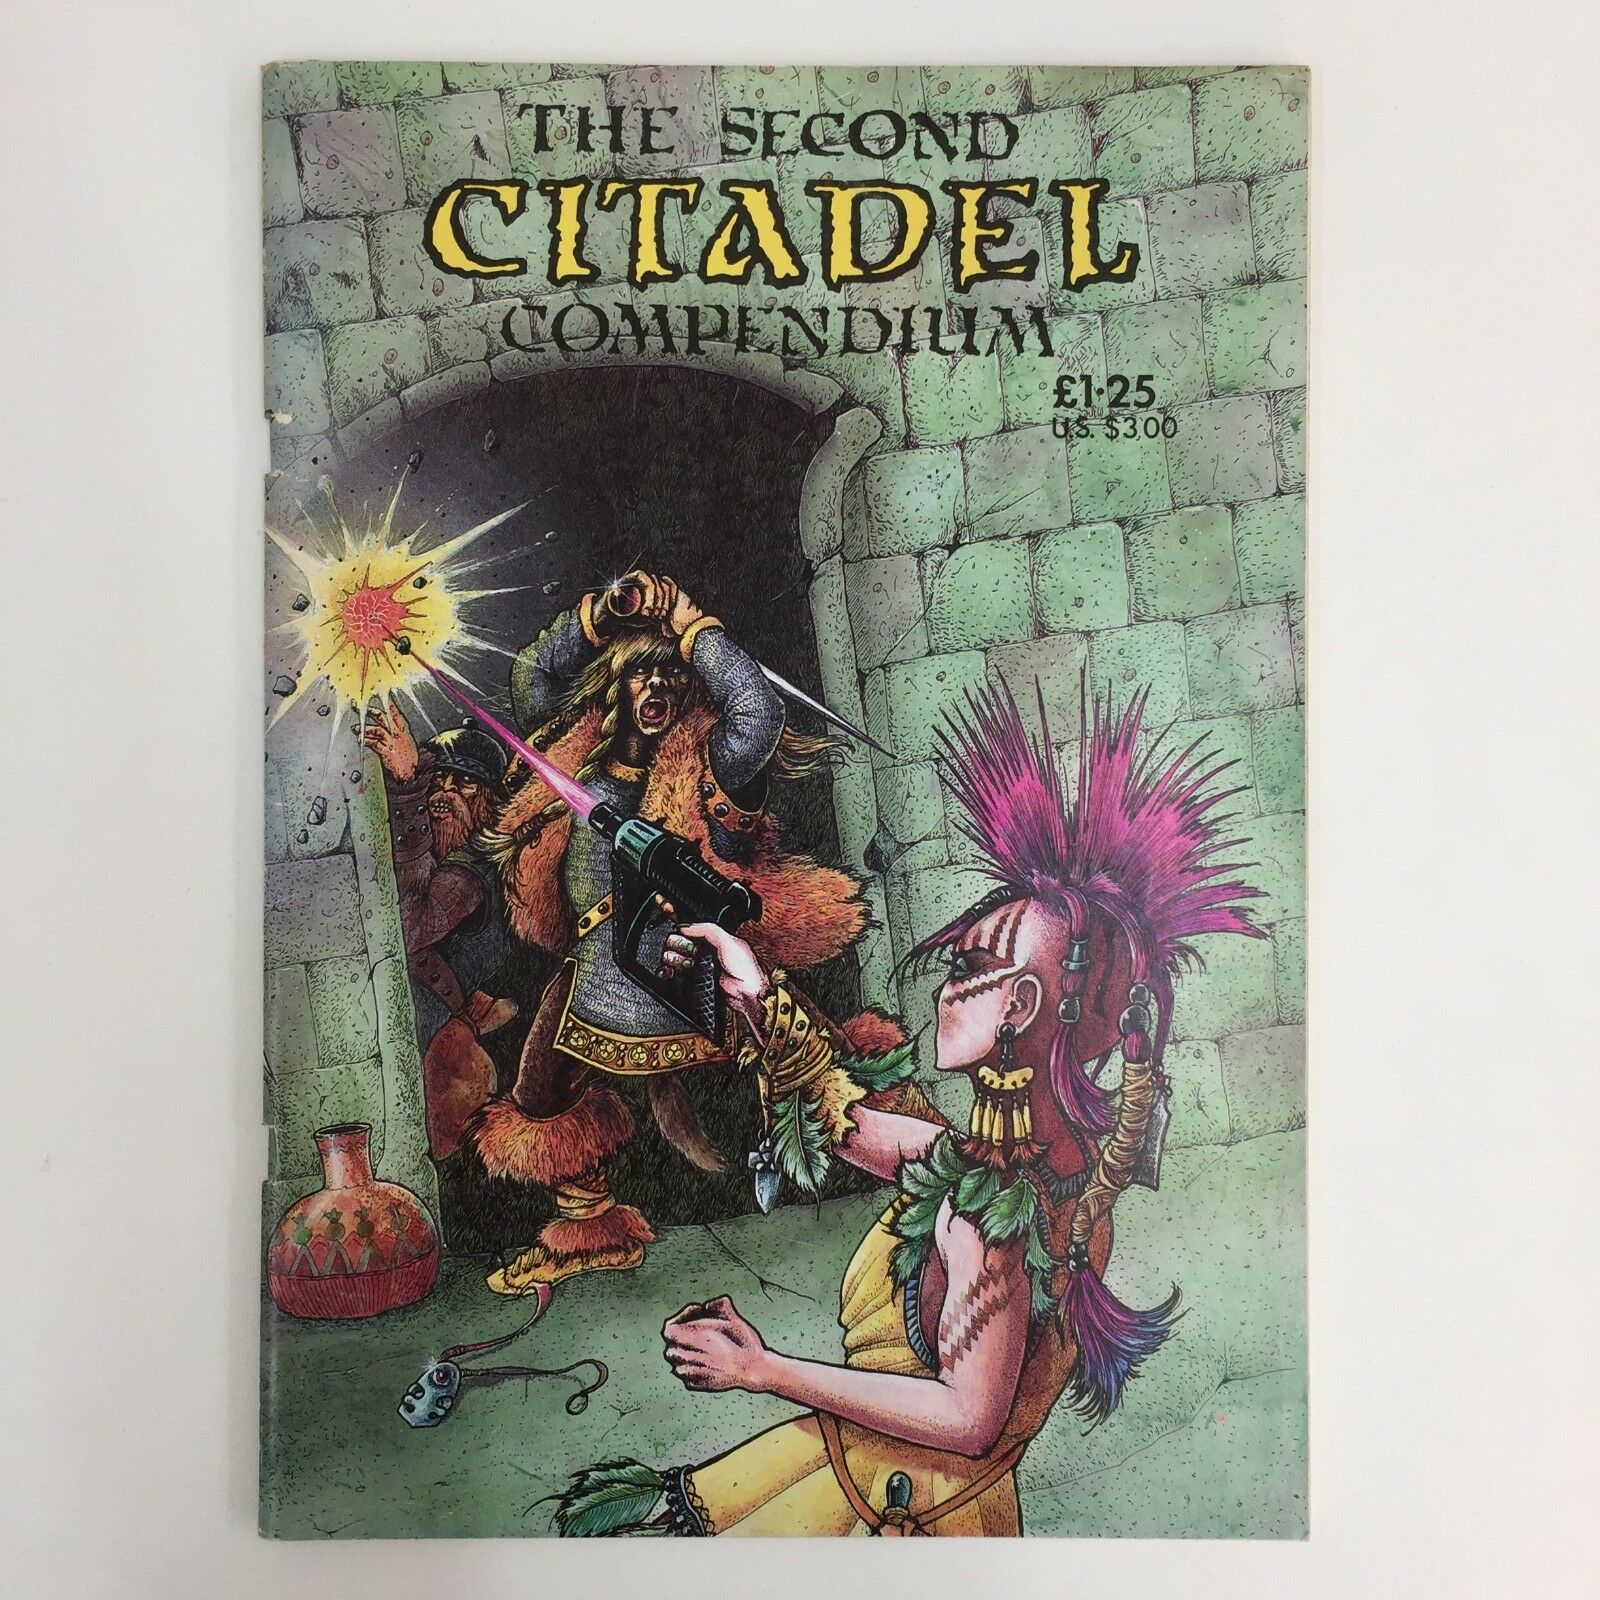 THE SECOND CITADEL COMPENDIUM AN IRREGULAR JOURNAL GAMES WORKSHOP WARHAMMER